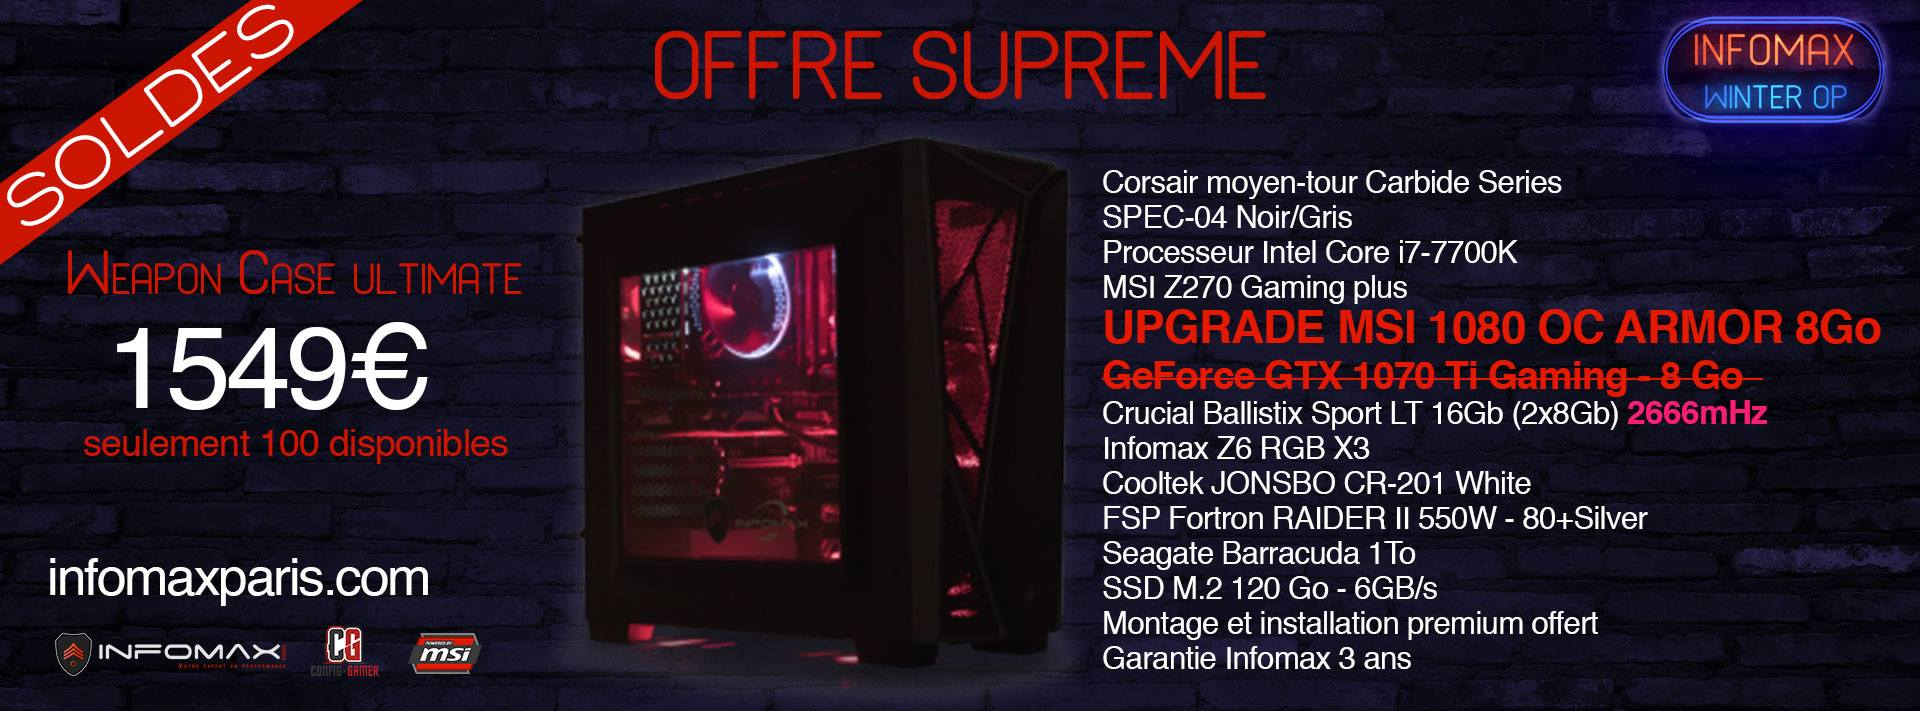 solde sur le pc weapon case ultimate i7 7700k gtx 1080 et 16go de ram config. Black Bedroom Furniture Sets. Home Design Ideas